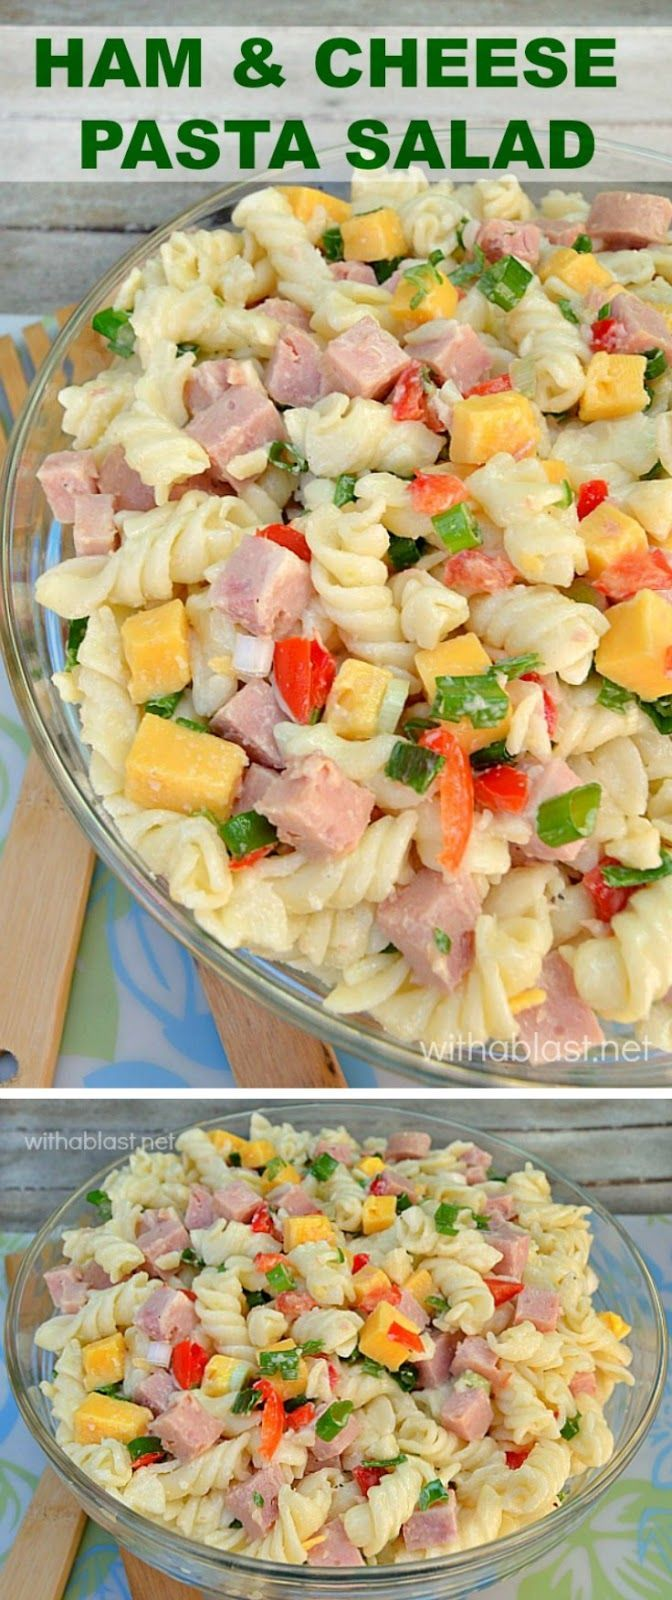 A simple, yet popular, delicious Ham and Cheese Pasta Salad with just enough dressing to make it tasty enough for seconds (or thirds!):